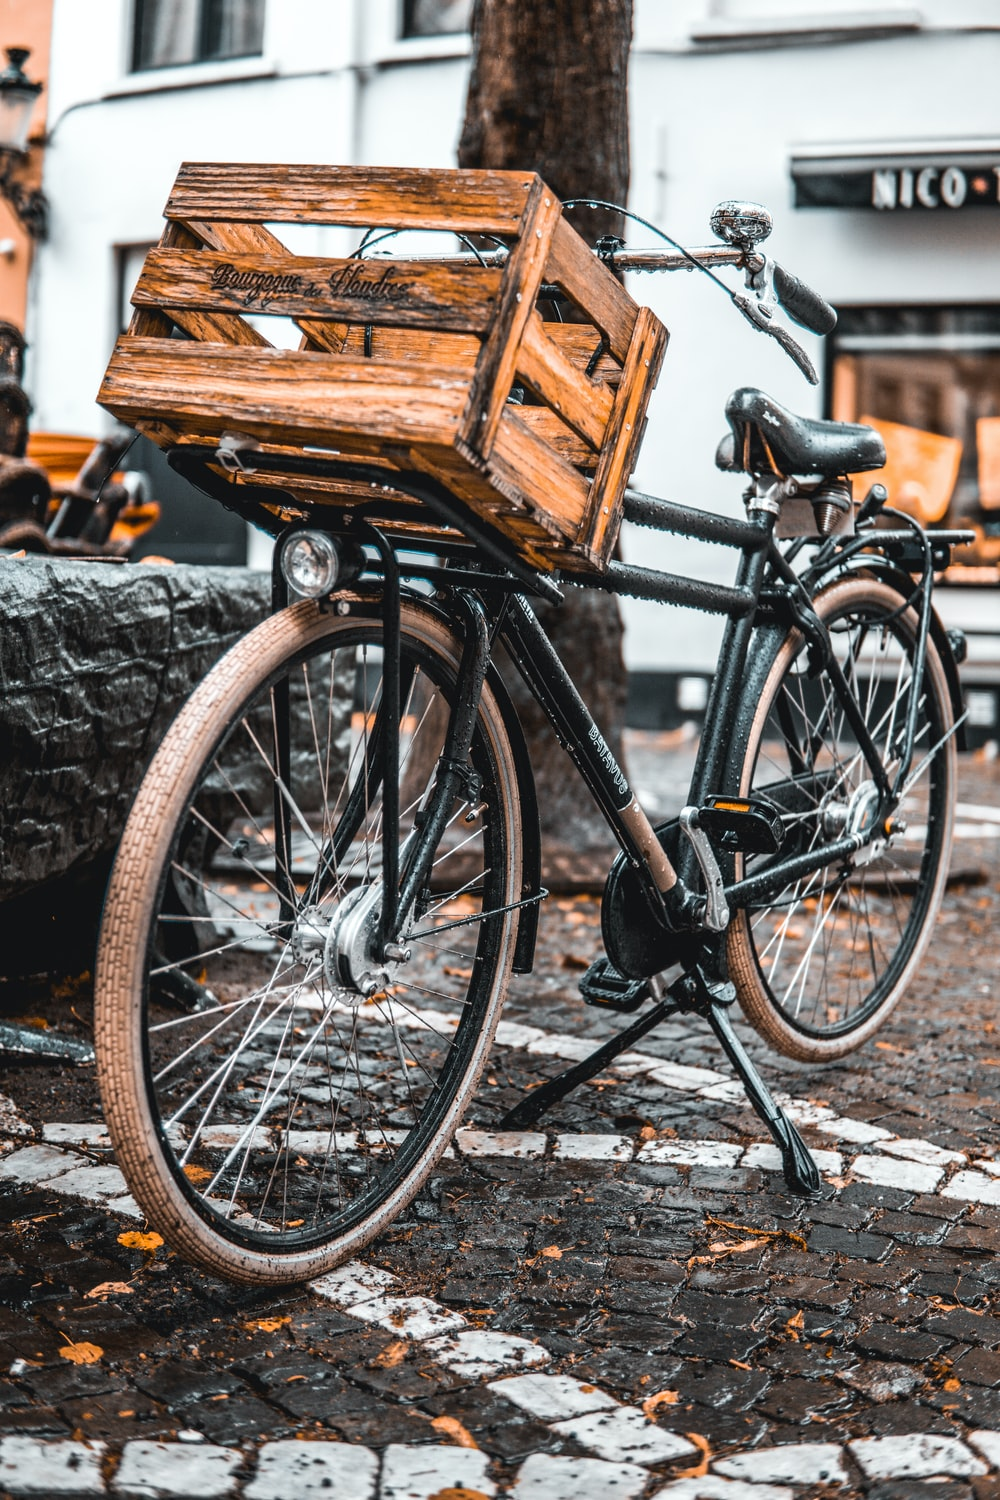 brown wooden crate on bicycle